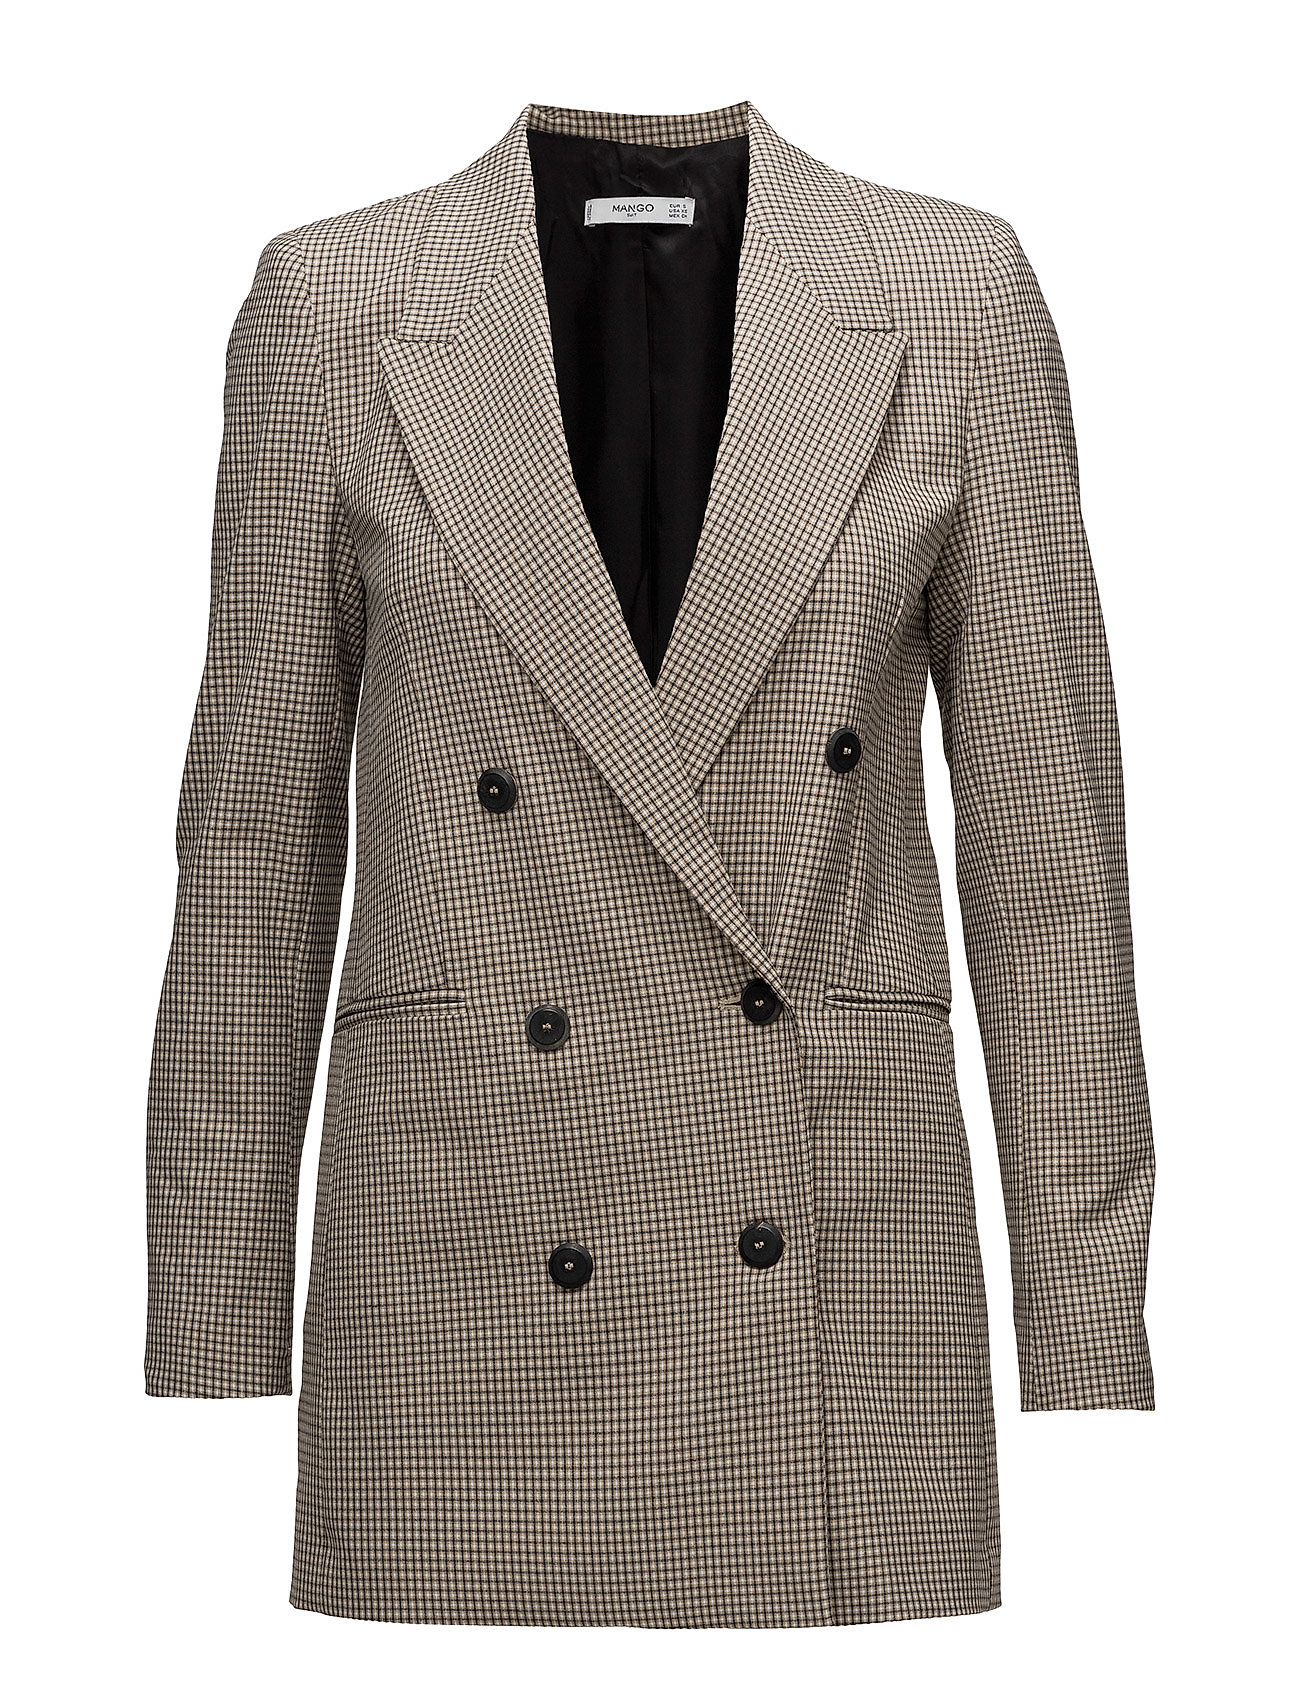 Mango Double-breasted check suit blazer